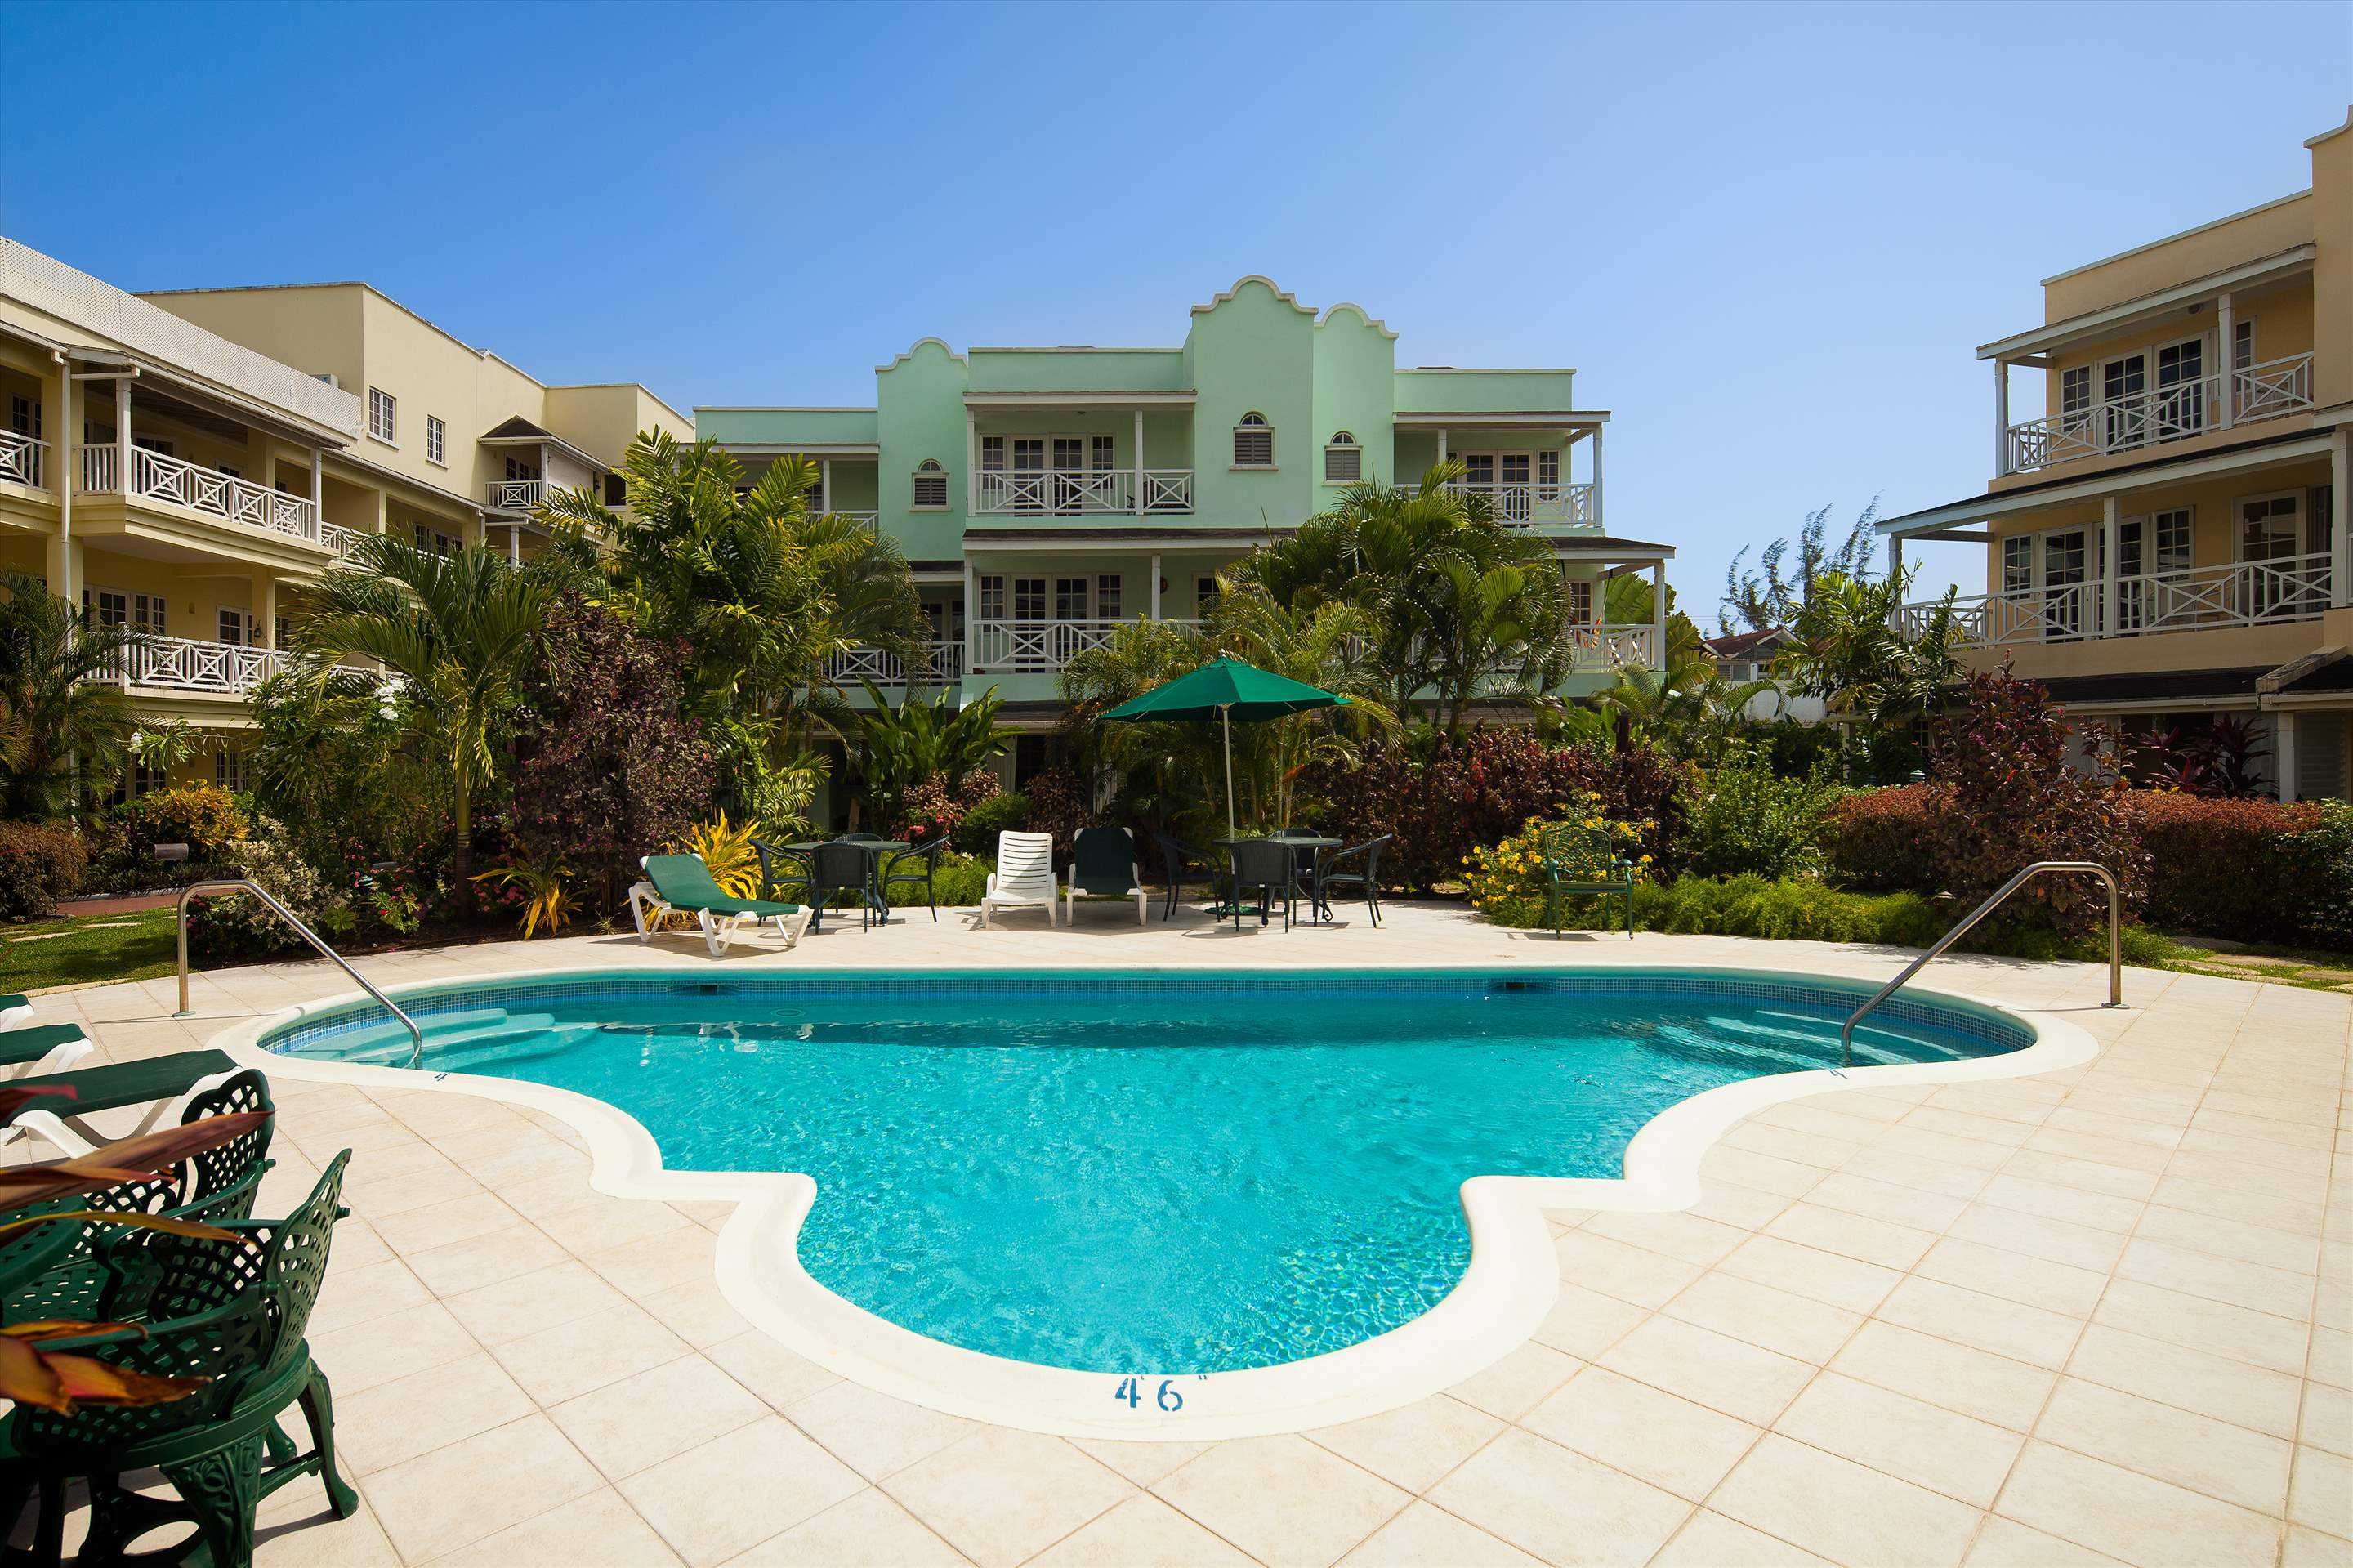 Margate Gardens 4, 2 bedroom, 2 bedroom apartment in St. Lawrence Gap & South Coast, Barbados Photo #1